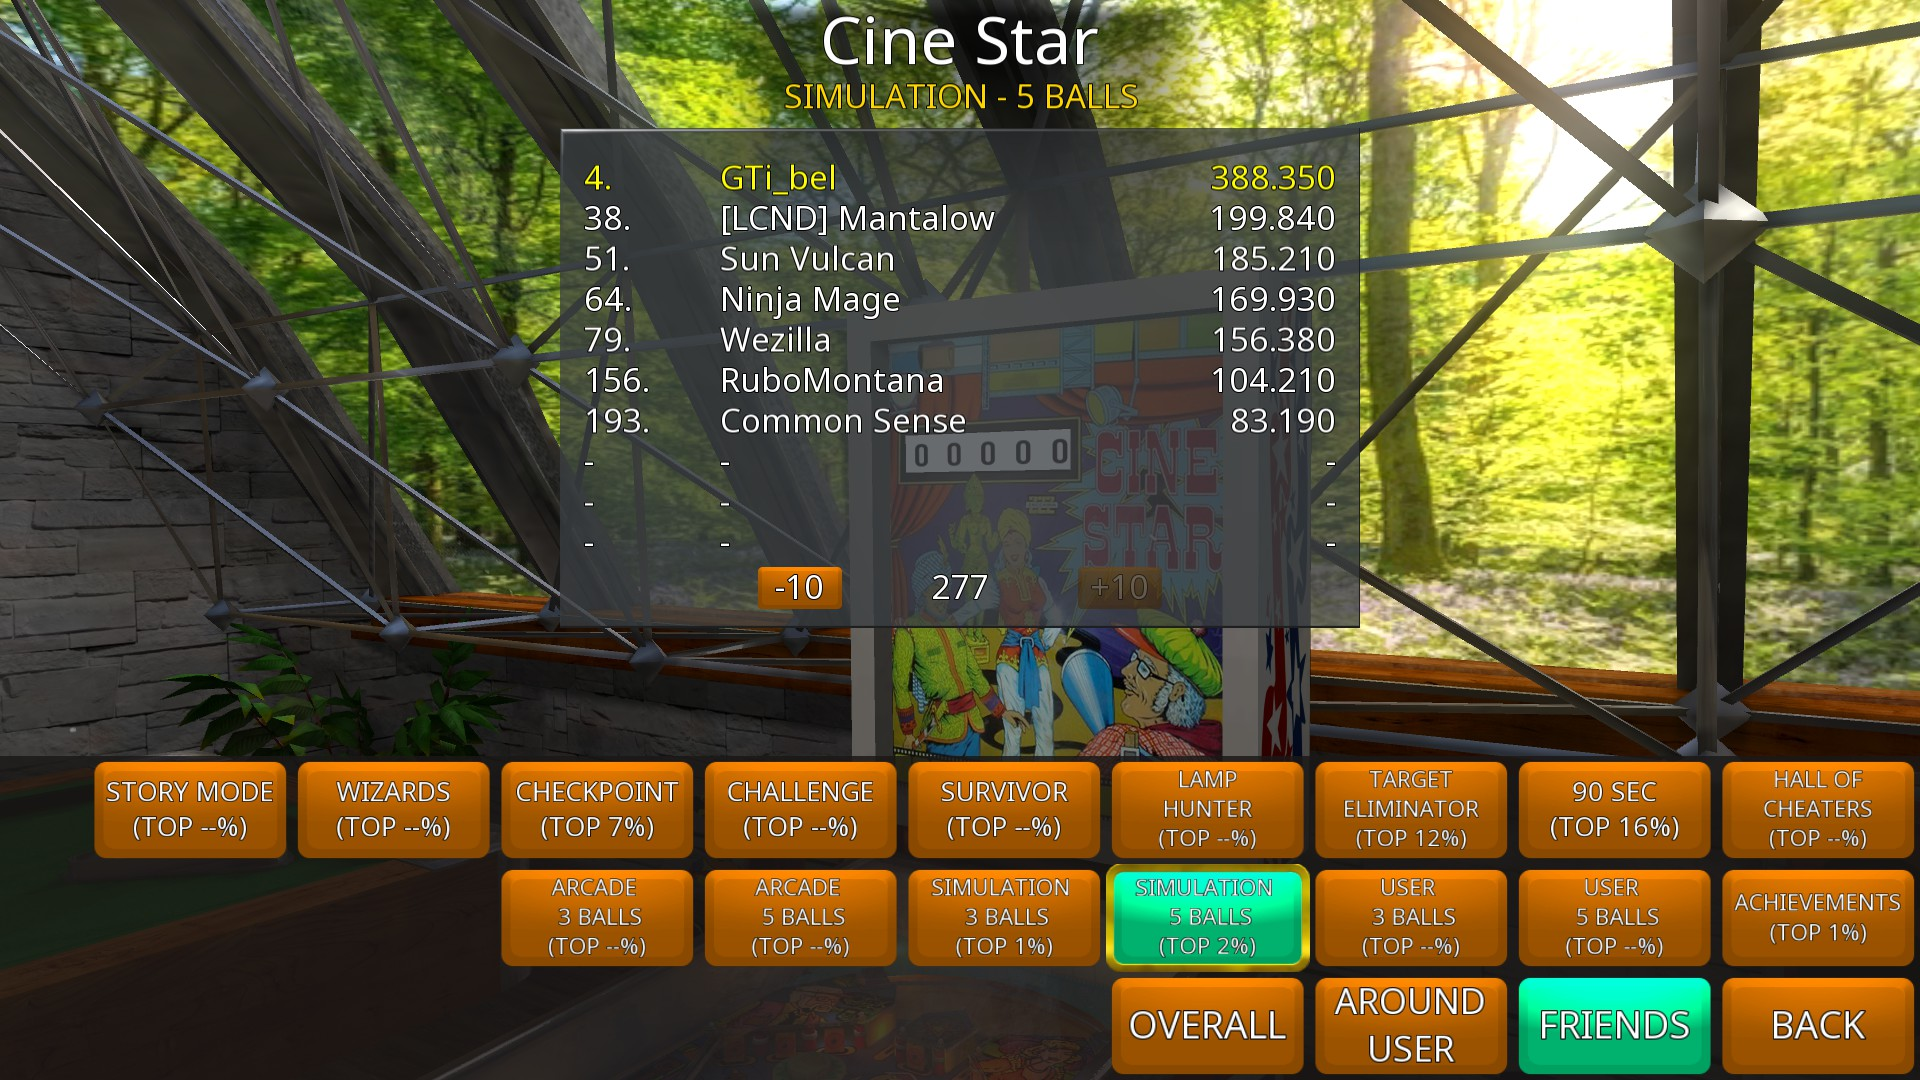 GTibel: Zaccaria Pinball: Cine Star [5 balls] (PC) 388,350 points on 2018-08-30 07:39:07